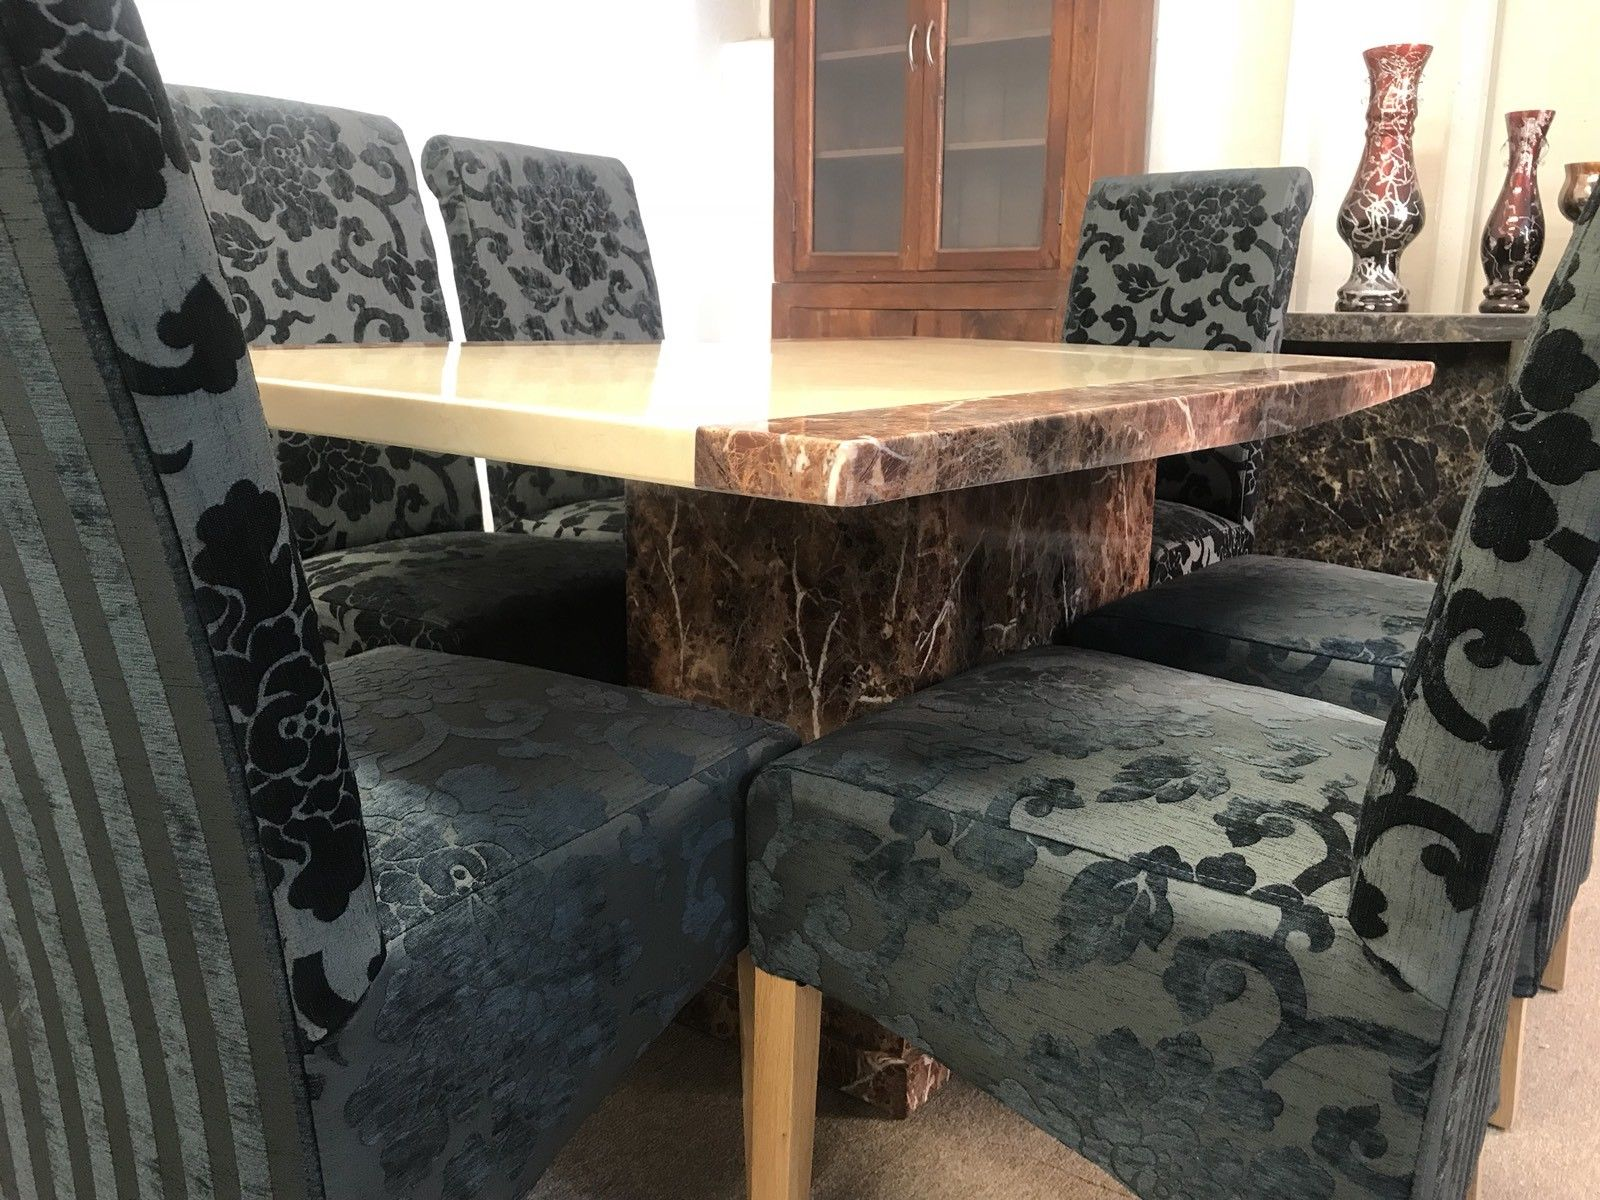 Monaco 160cm Marble Dining Table And 6 Black Scrollback Chairs Designer Marble